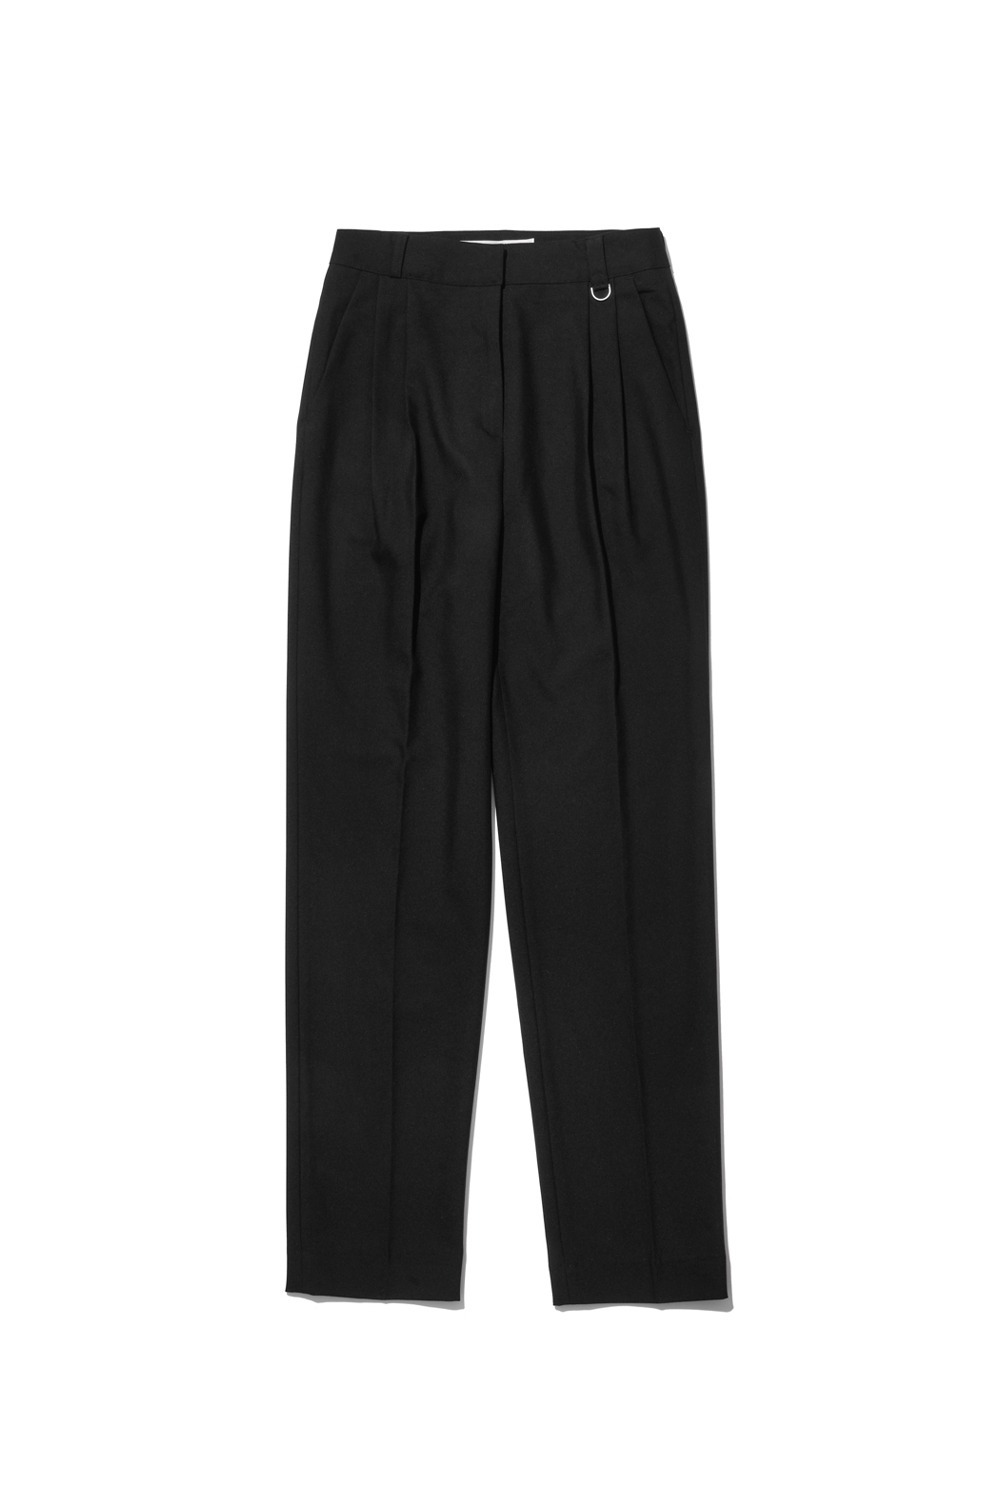 PROJECT MAGO_TAILORED PINTUCK TROUSERS_BLACK